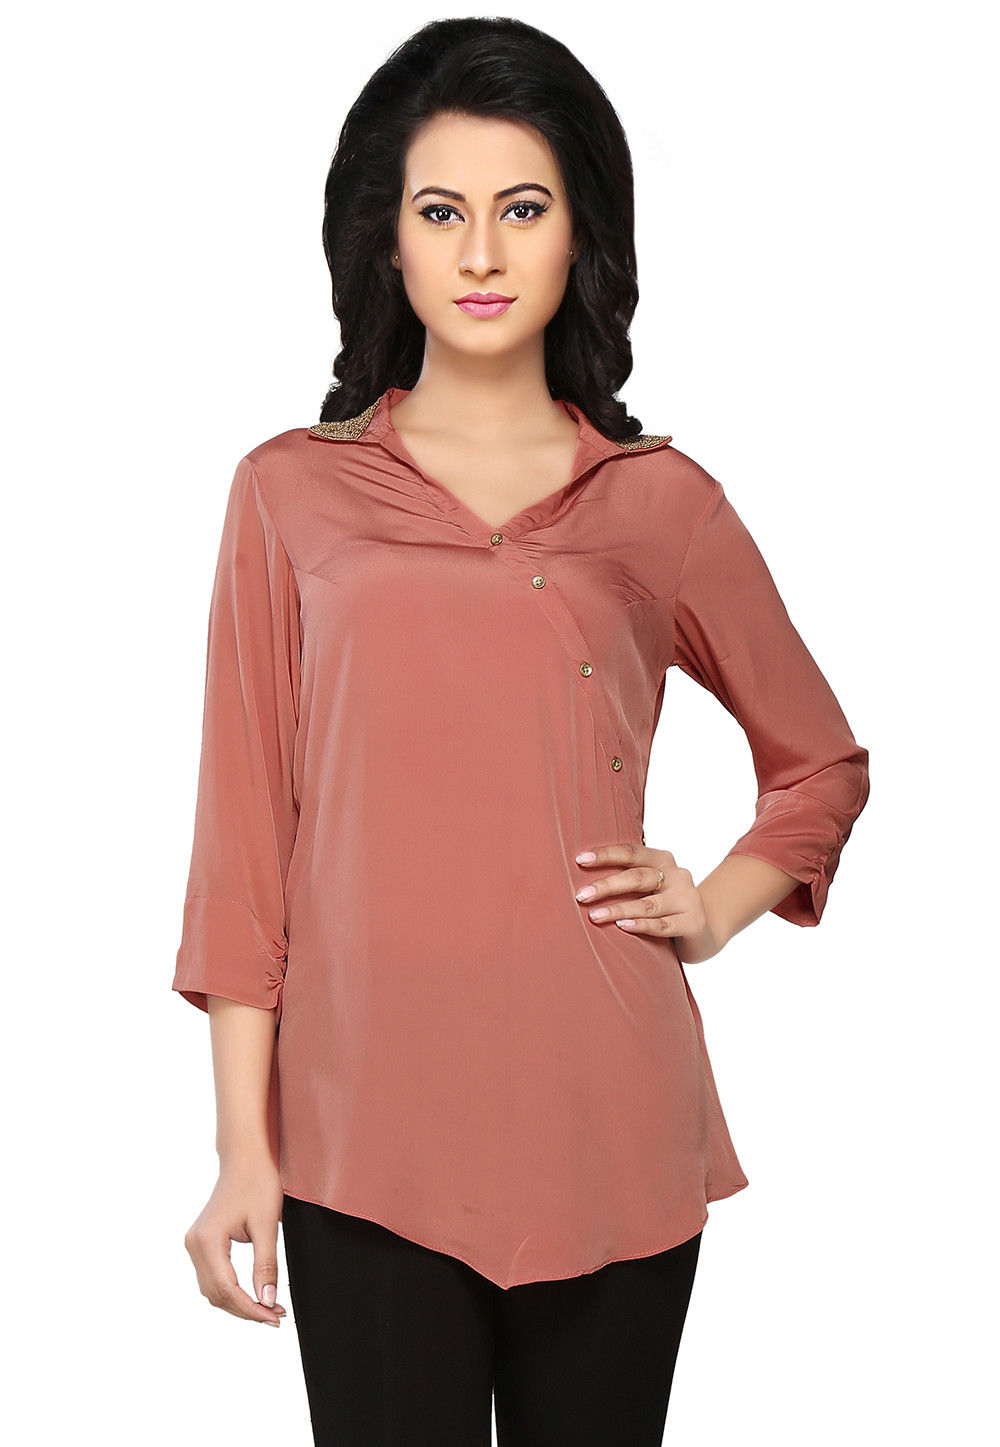 Plain Crepe Top in Old Rose